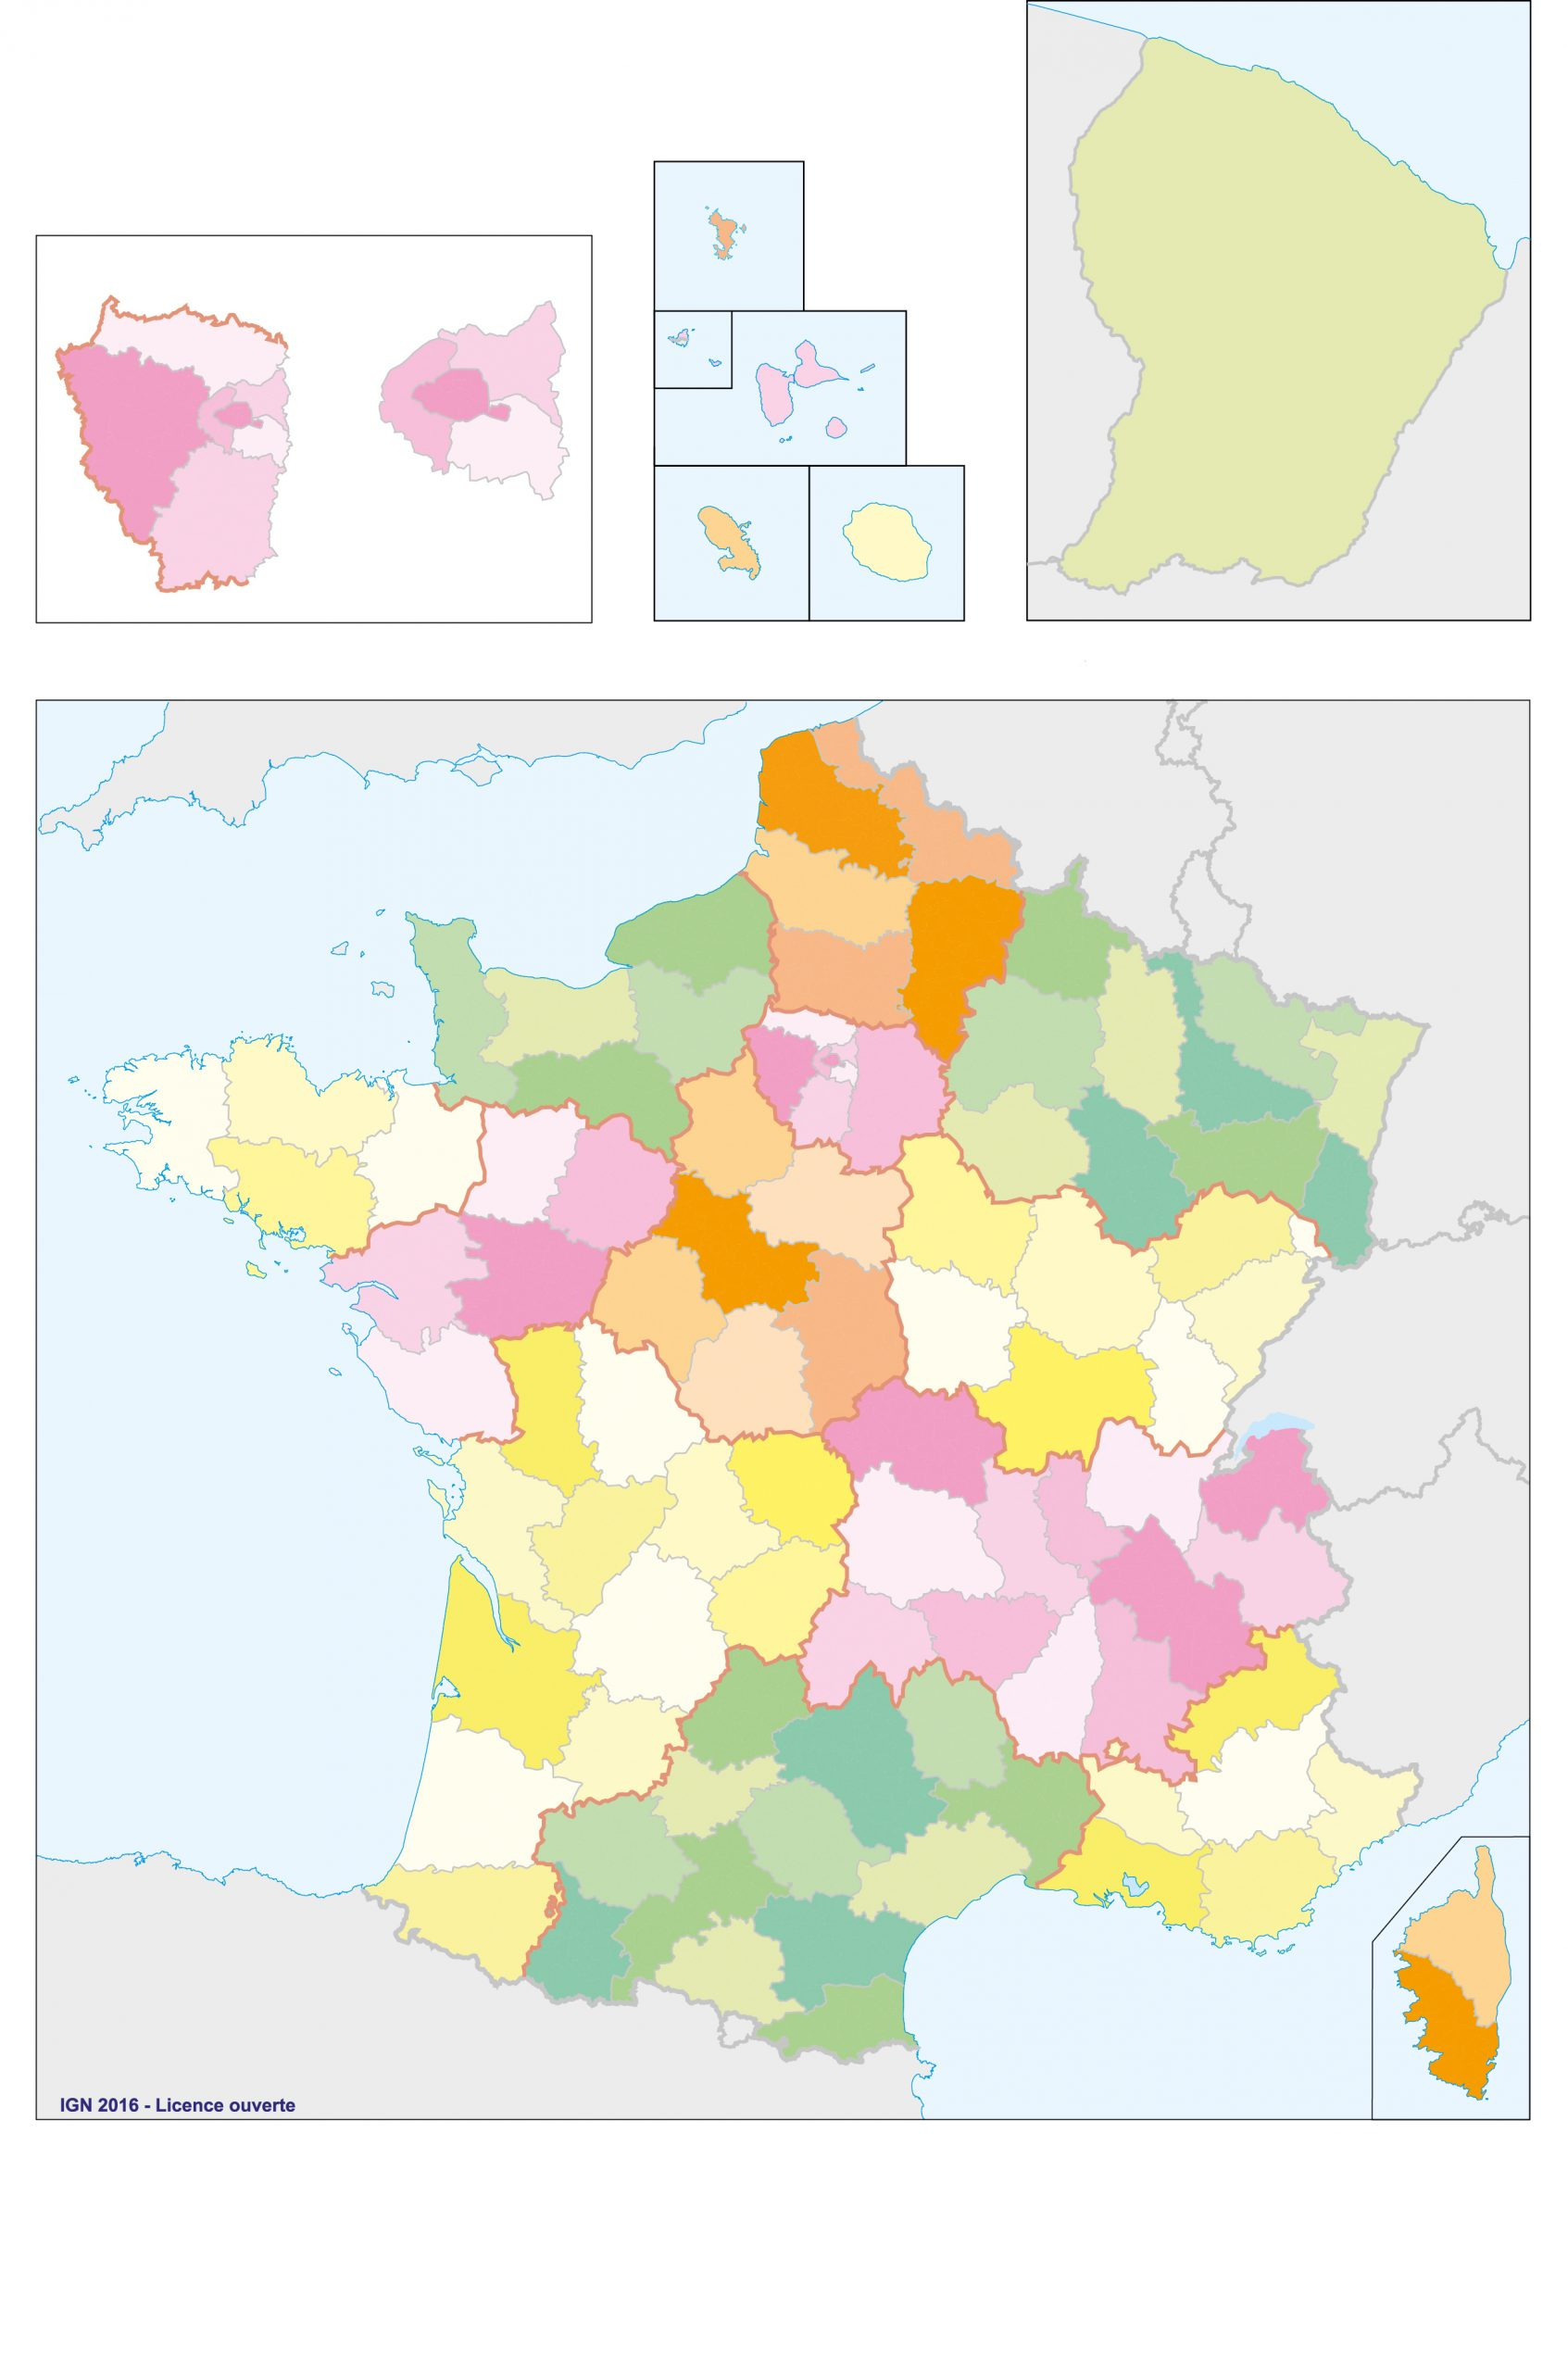 Fonds De Cartes | Éducation serapportantà Régions De France Liste